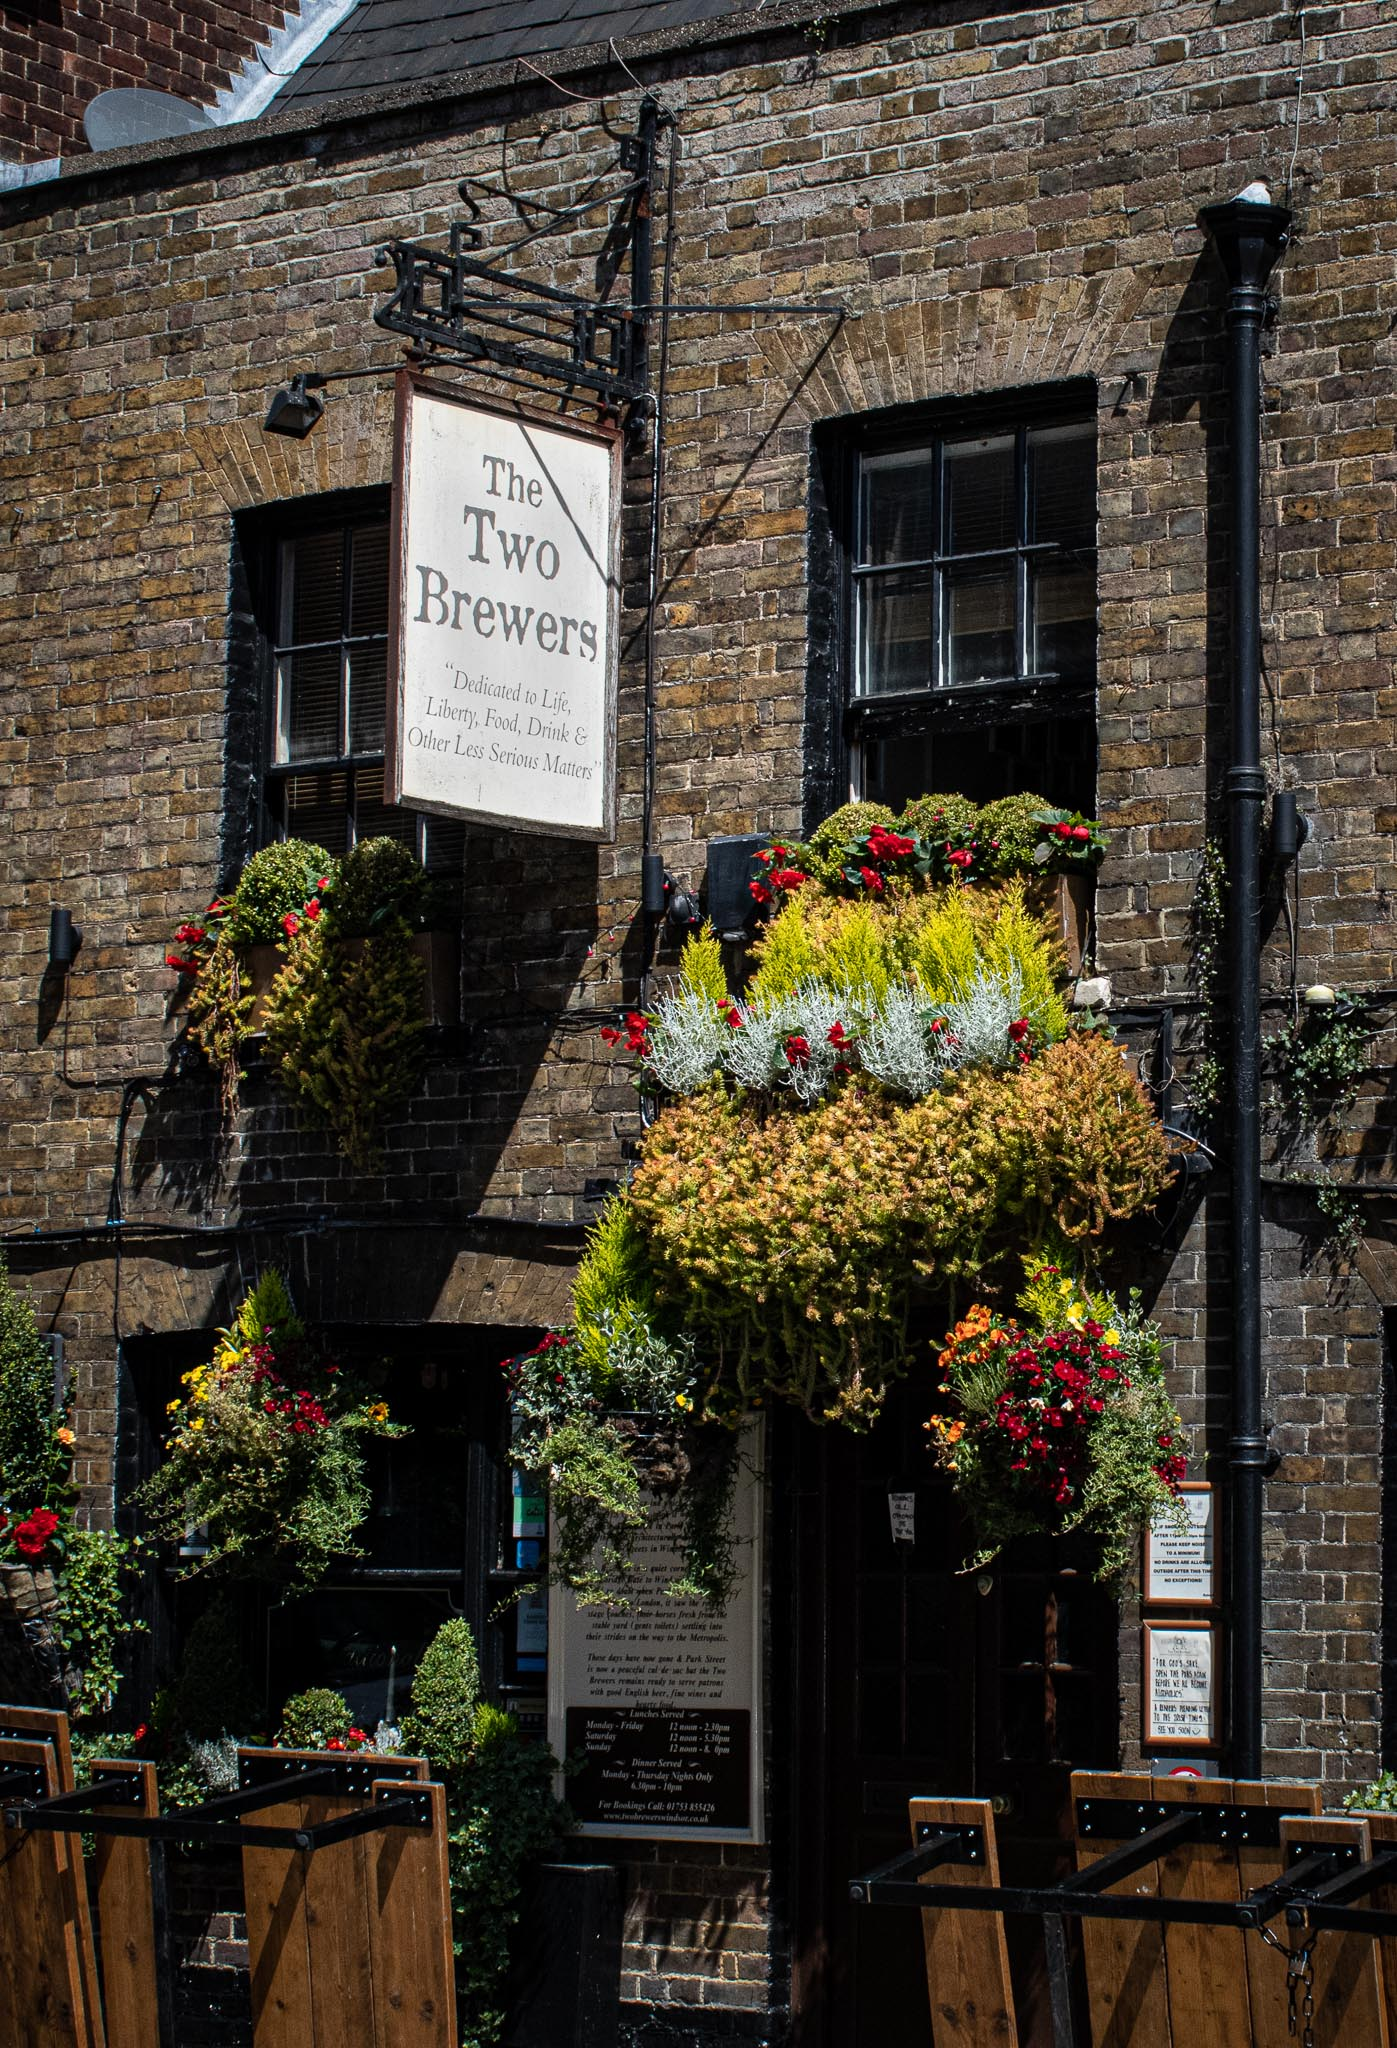 The Two Brewers is the town's oldest public houses and is a great place for grabbing a drink. It's just outside the castle.